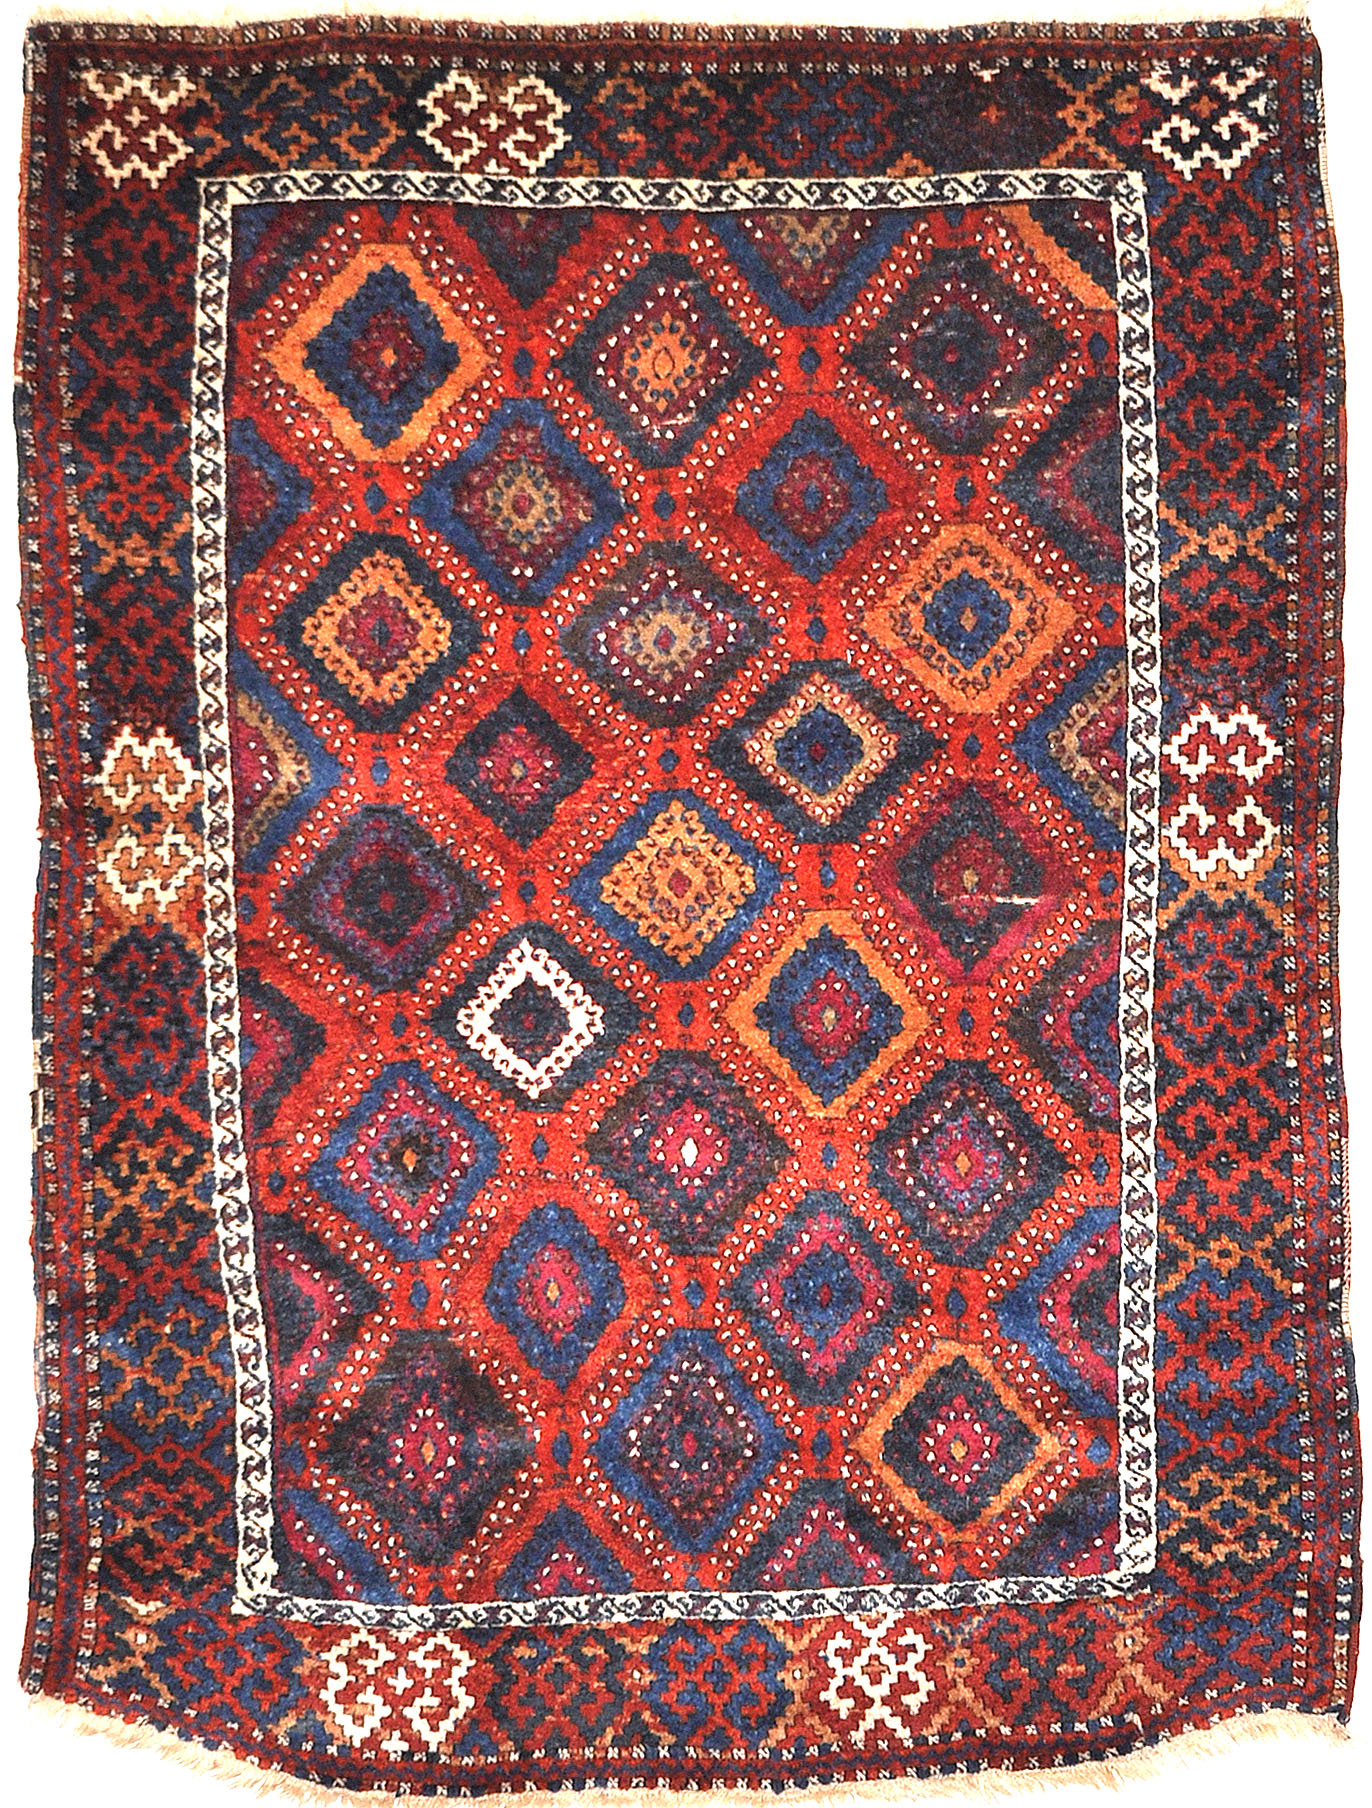 Antique Rare Eastern Kurdish Anatolian Yuruk Rug Santa Barbara